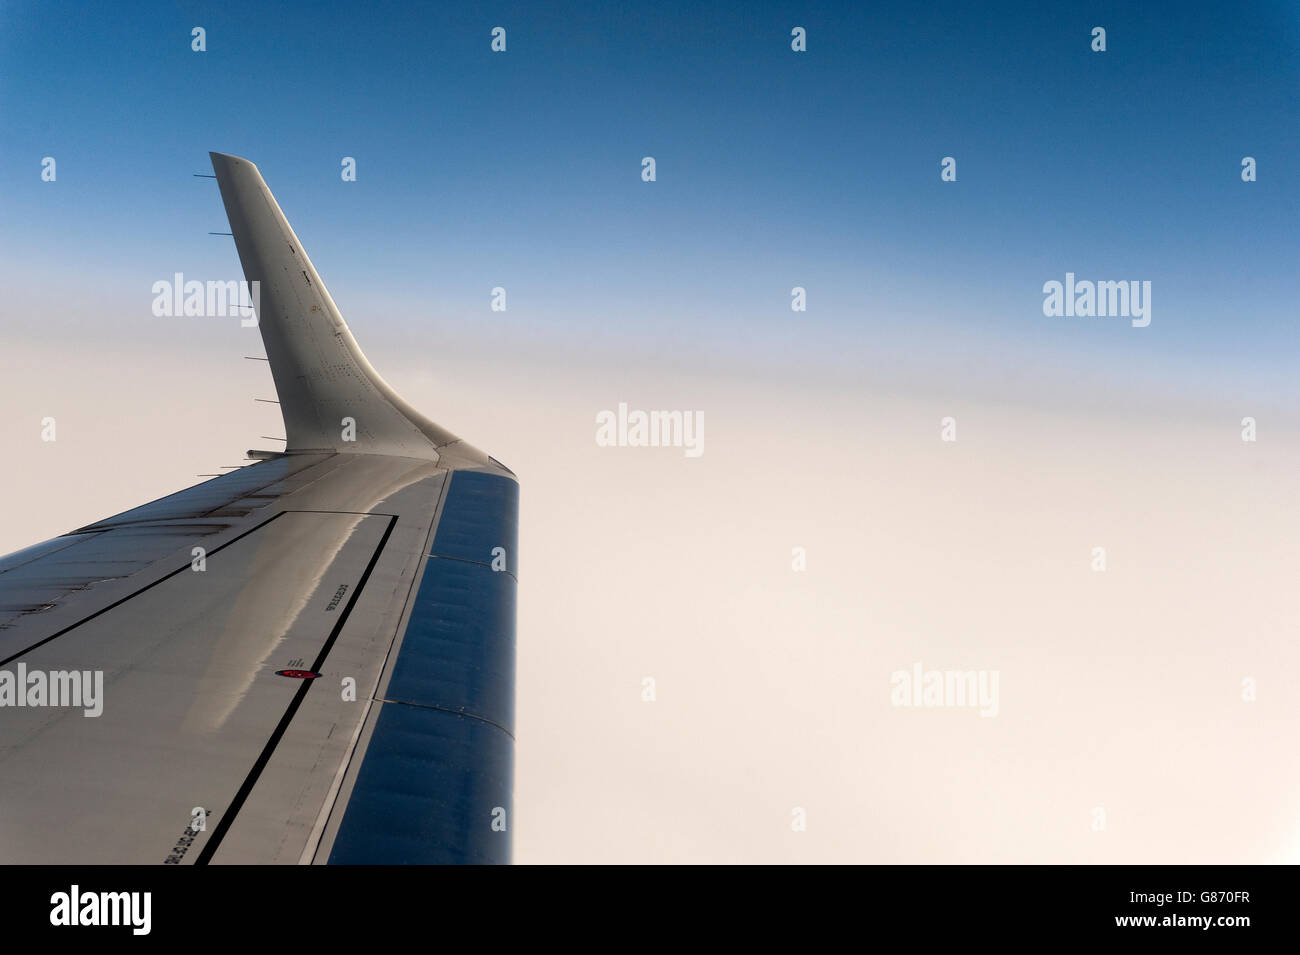 view from airplane window of wing tip and clouds - Stock Image